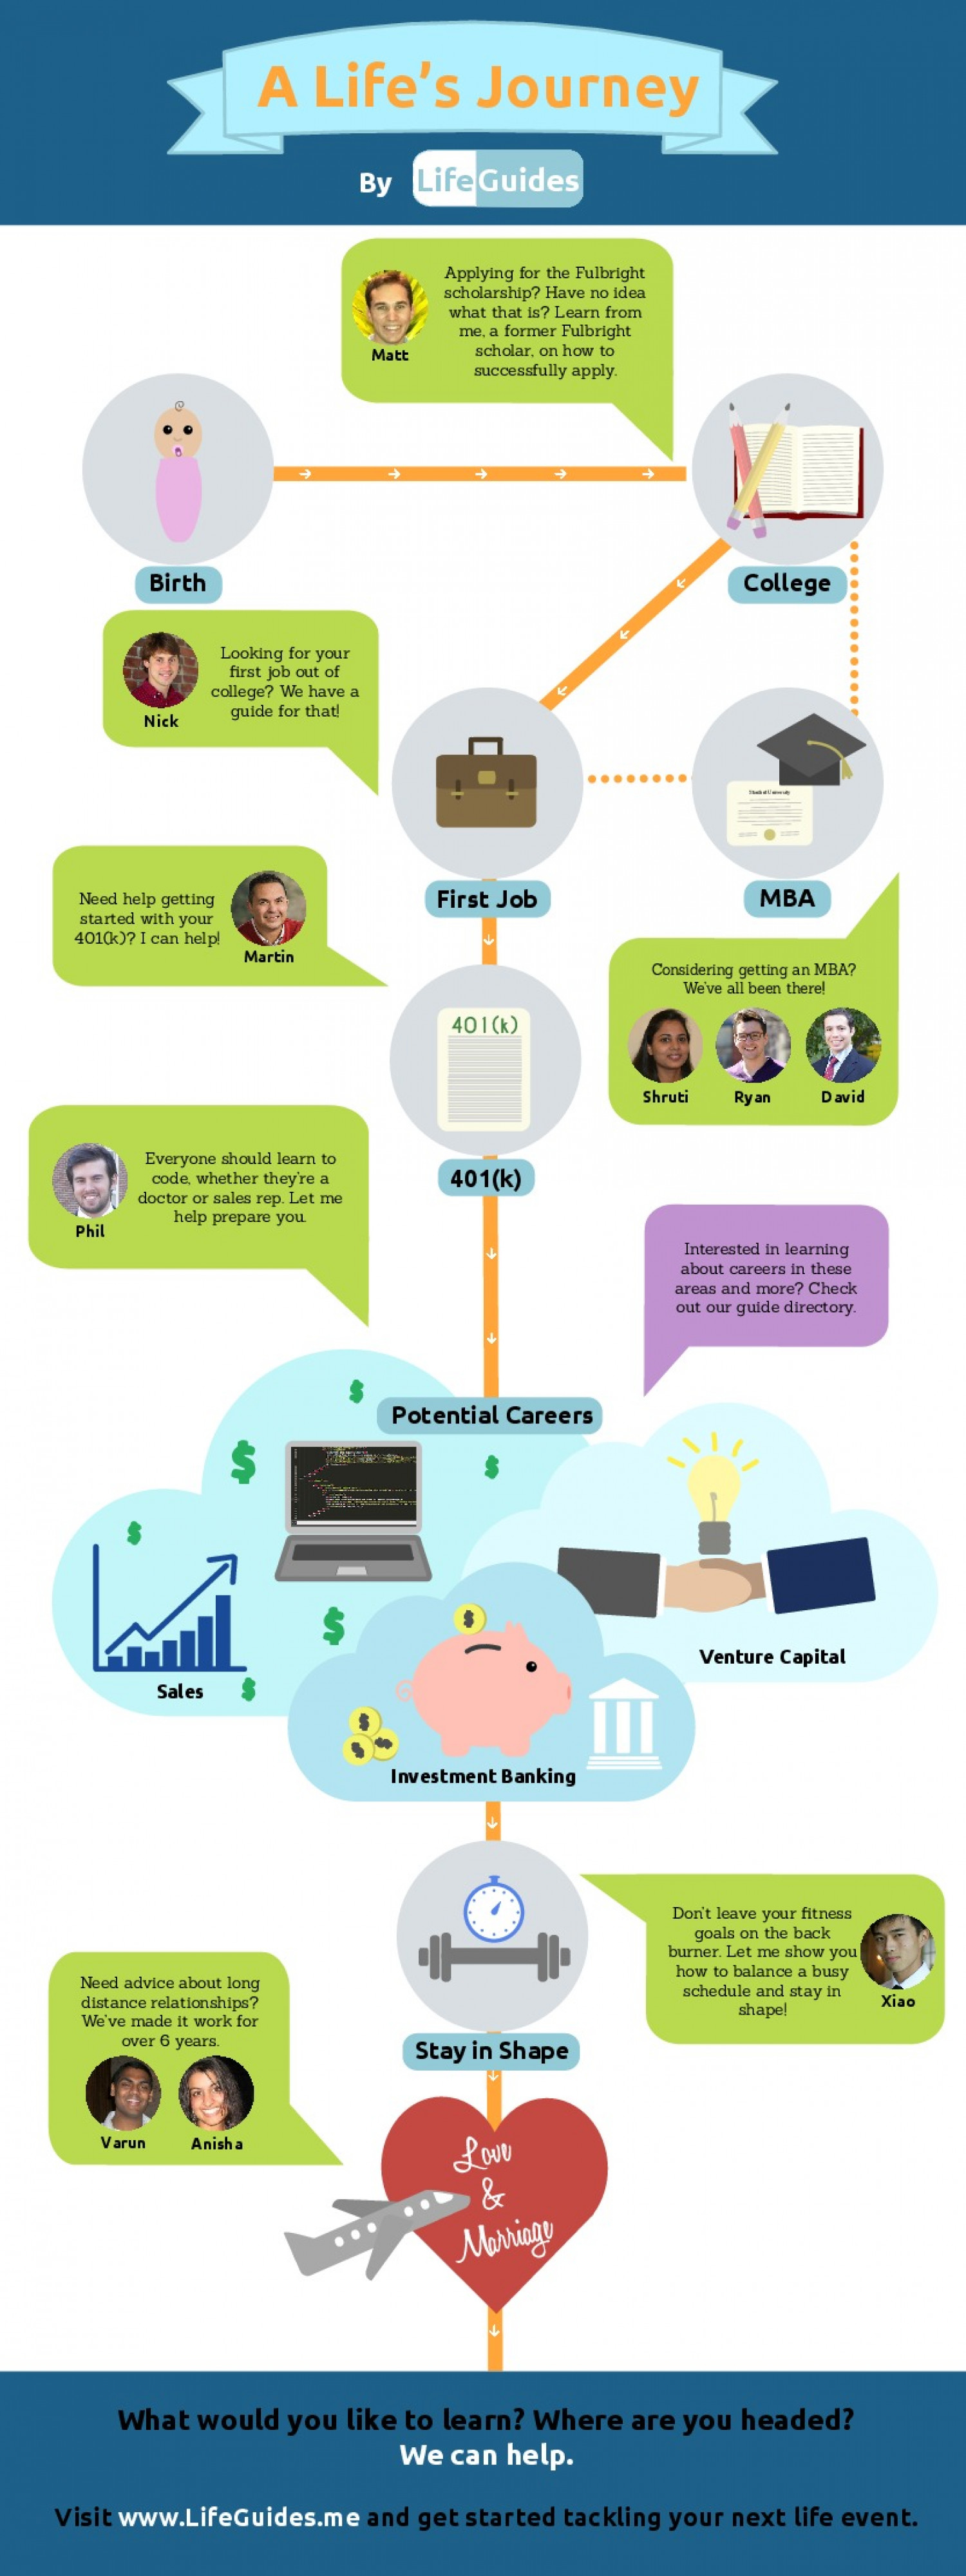 A Life's Journey Infographic